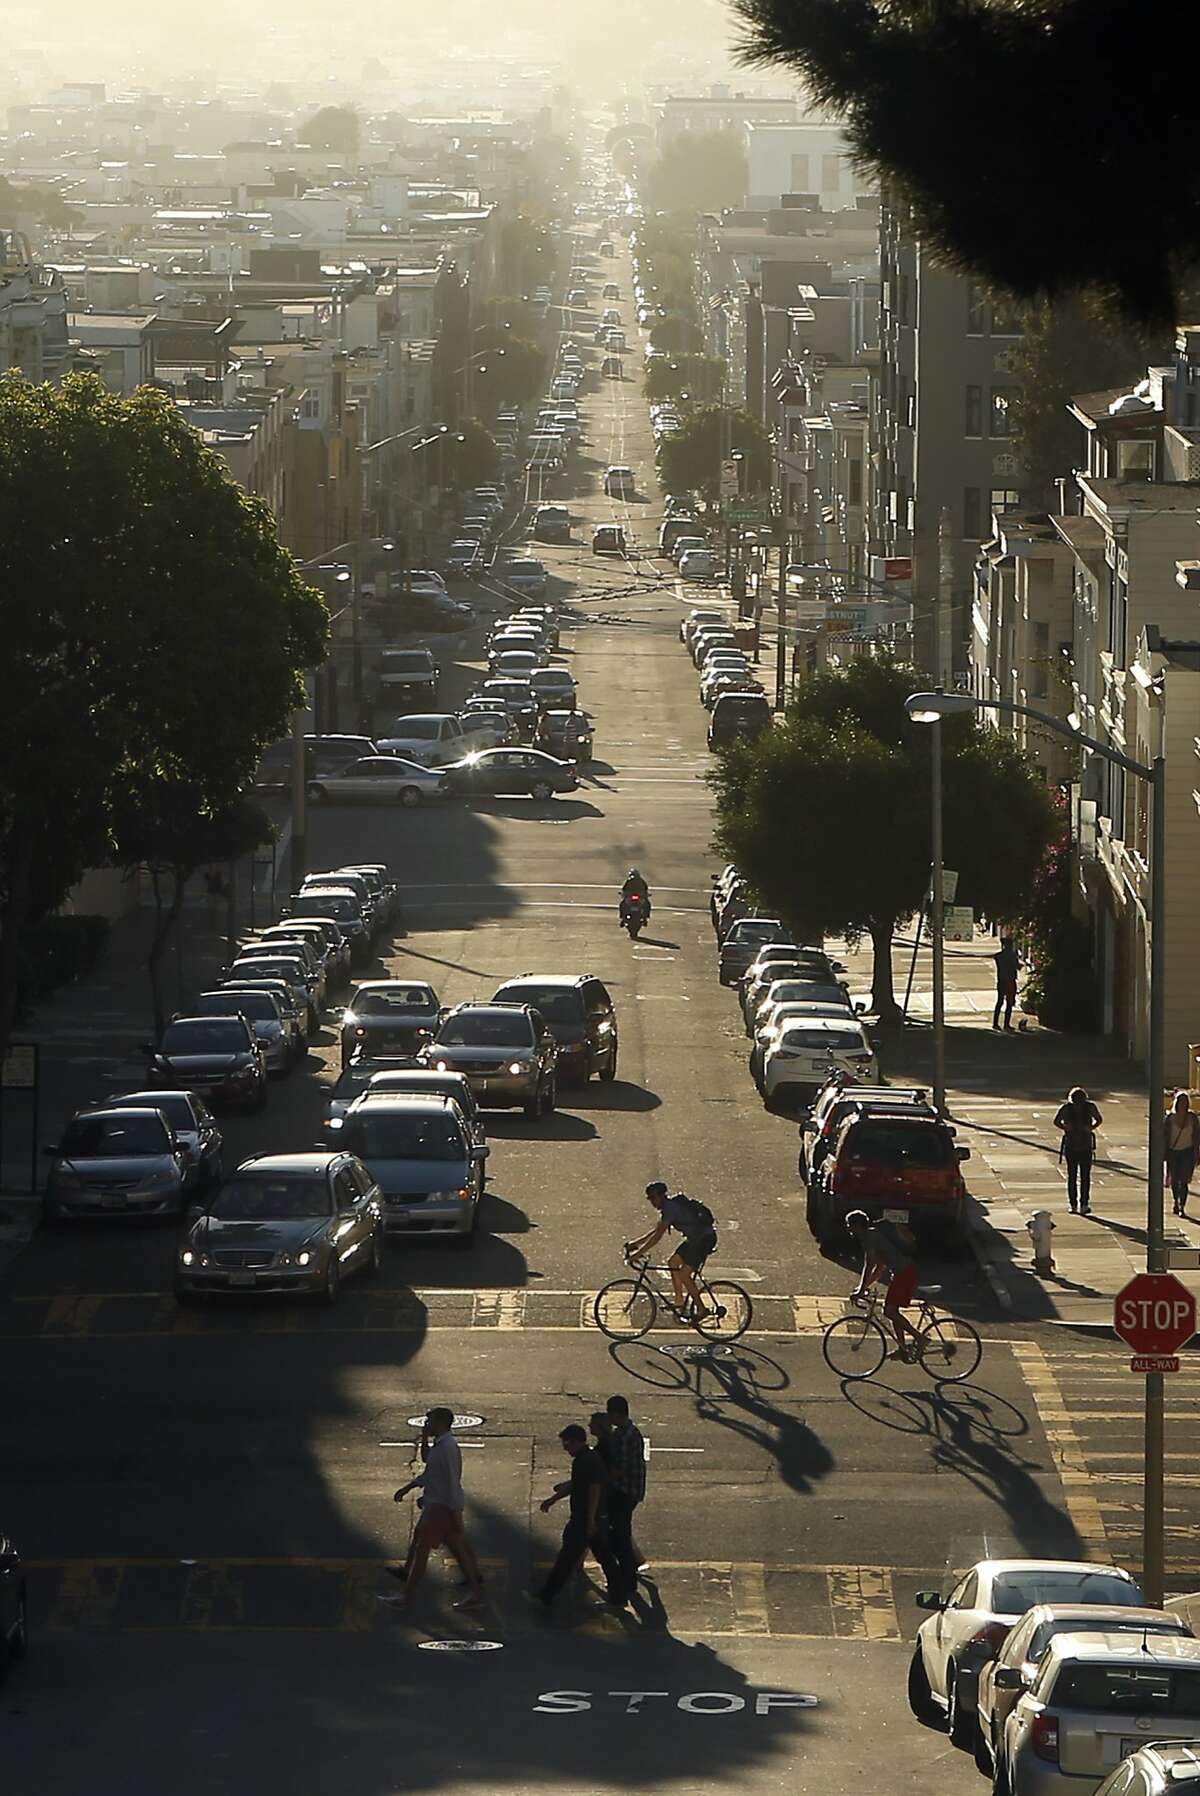 Looking West down Chestnut Street at the Marina District of San Francisco on October 12, 2014.